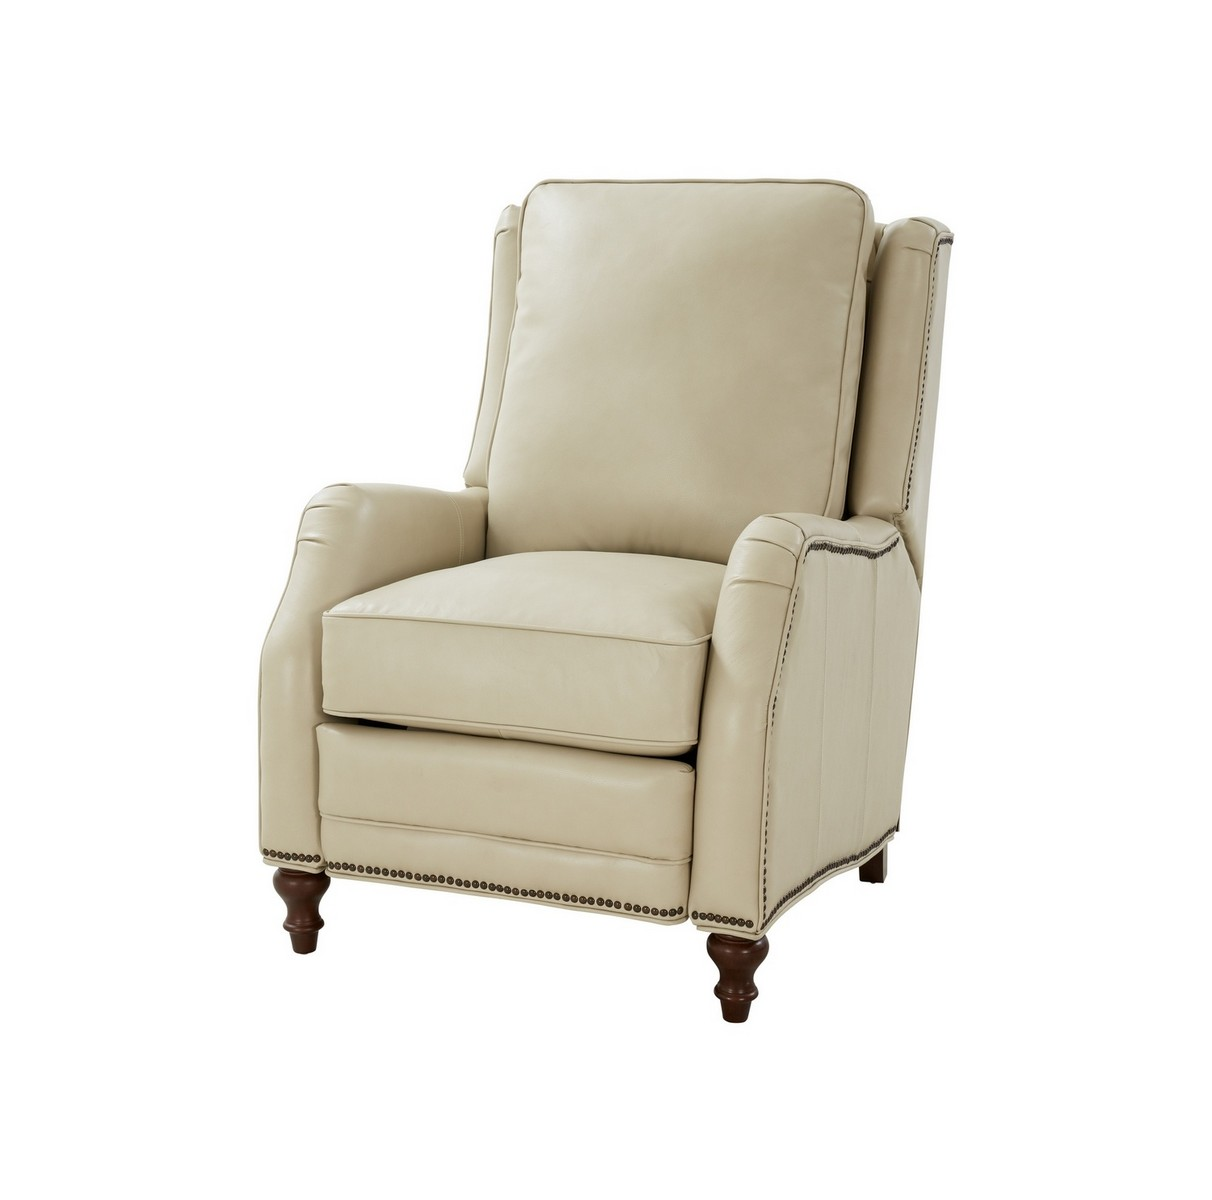 Barcalounger Huntington Power Recliner Chair - Barone Parchment/All Leather